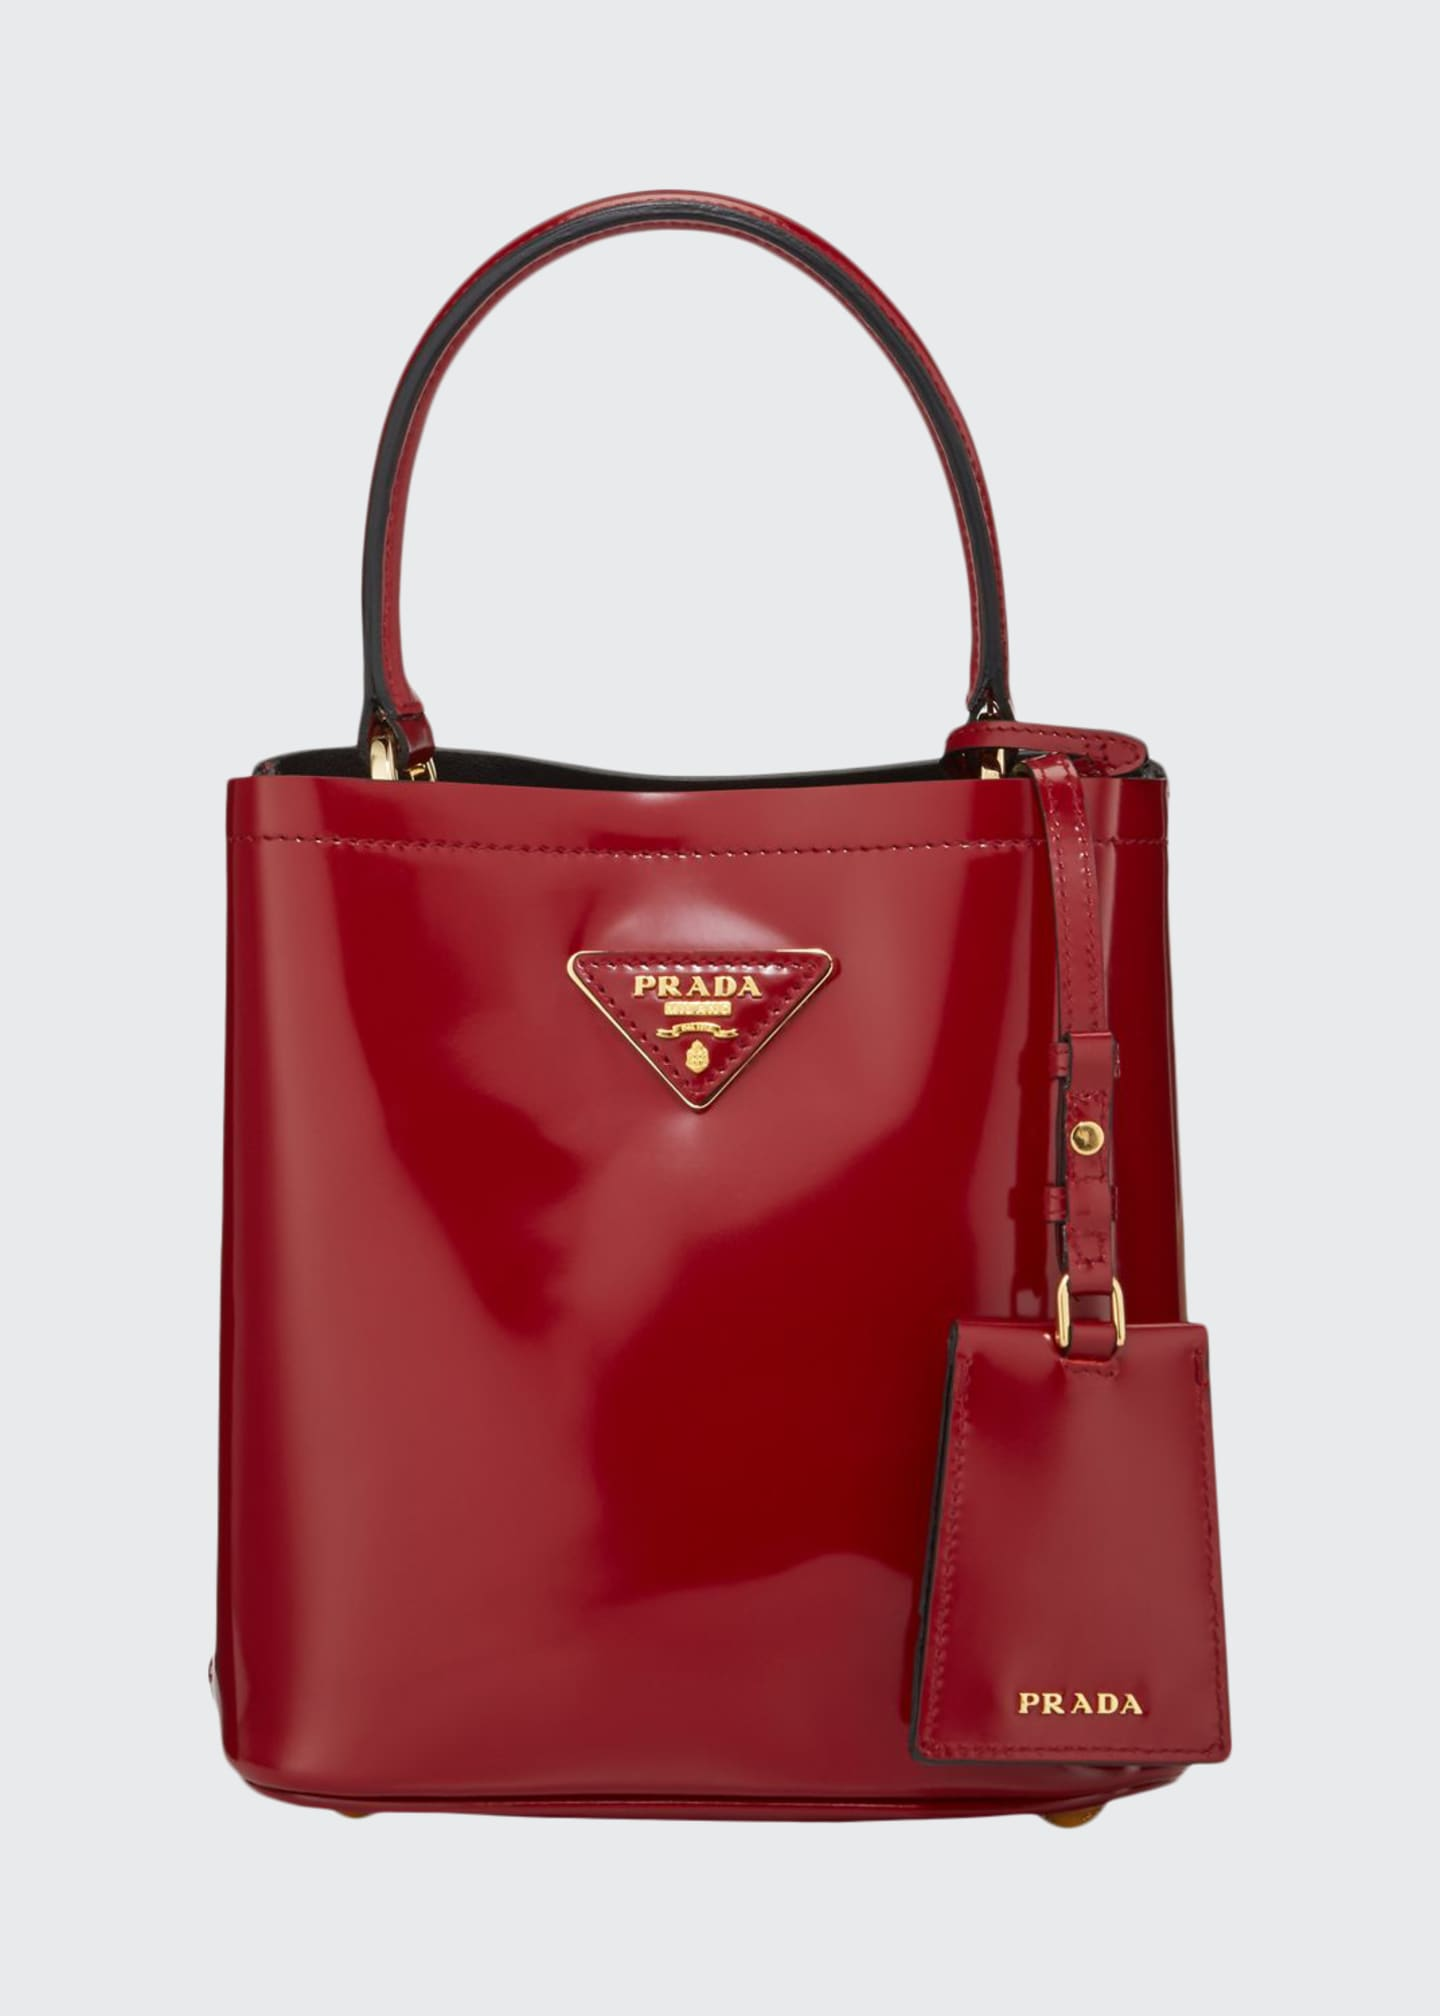 Prada Patent Leather Small Bucket Bag